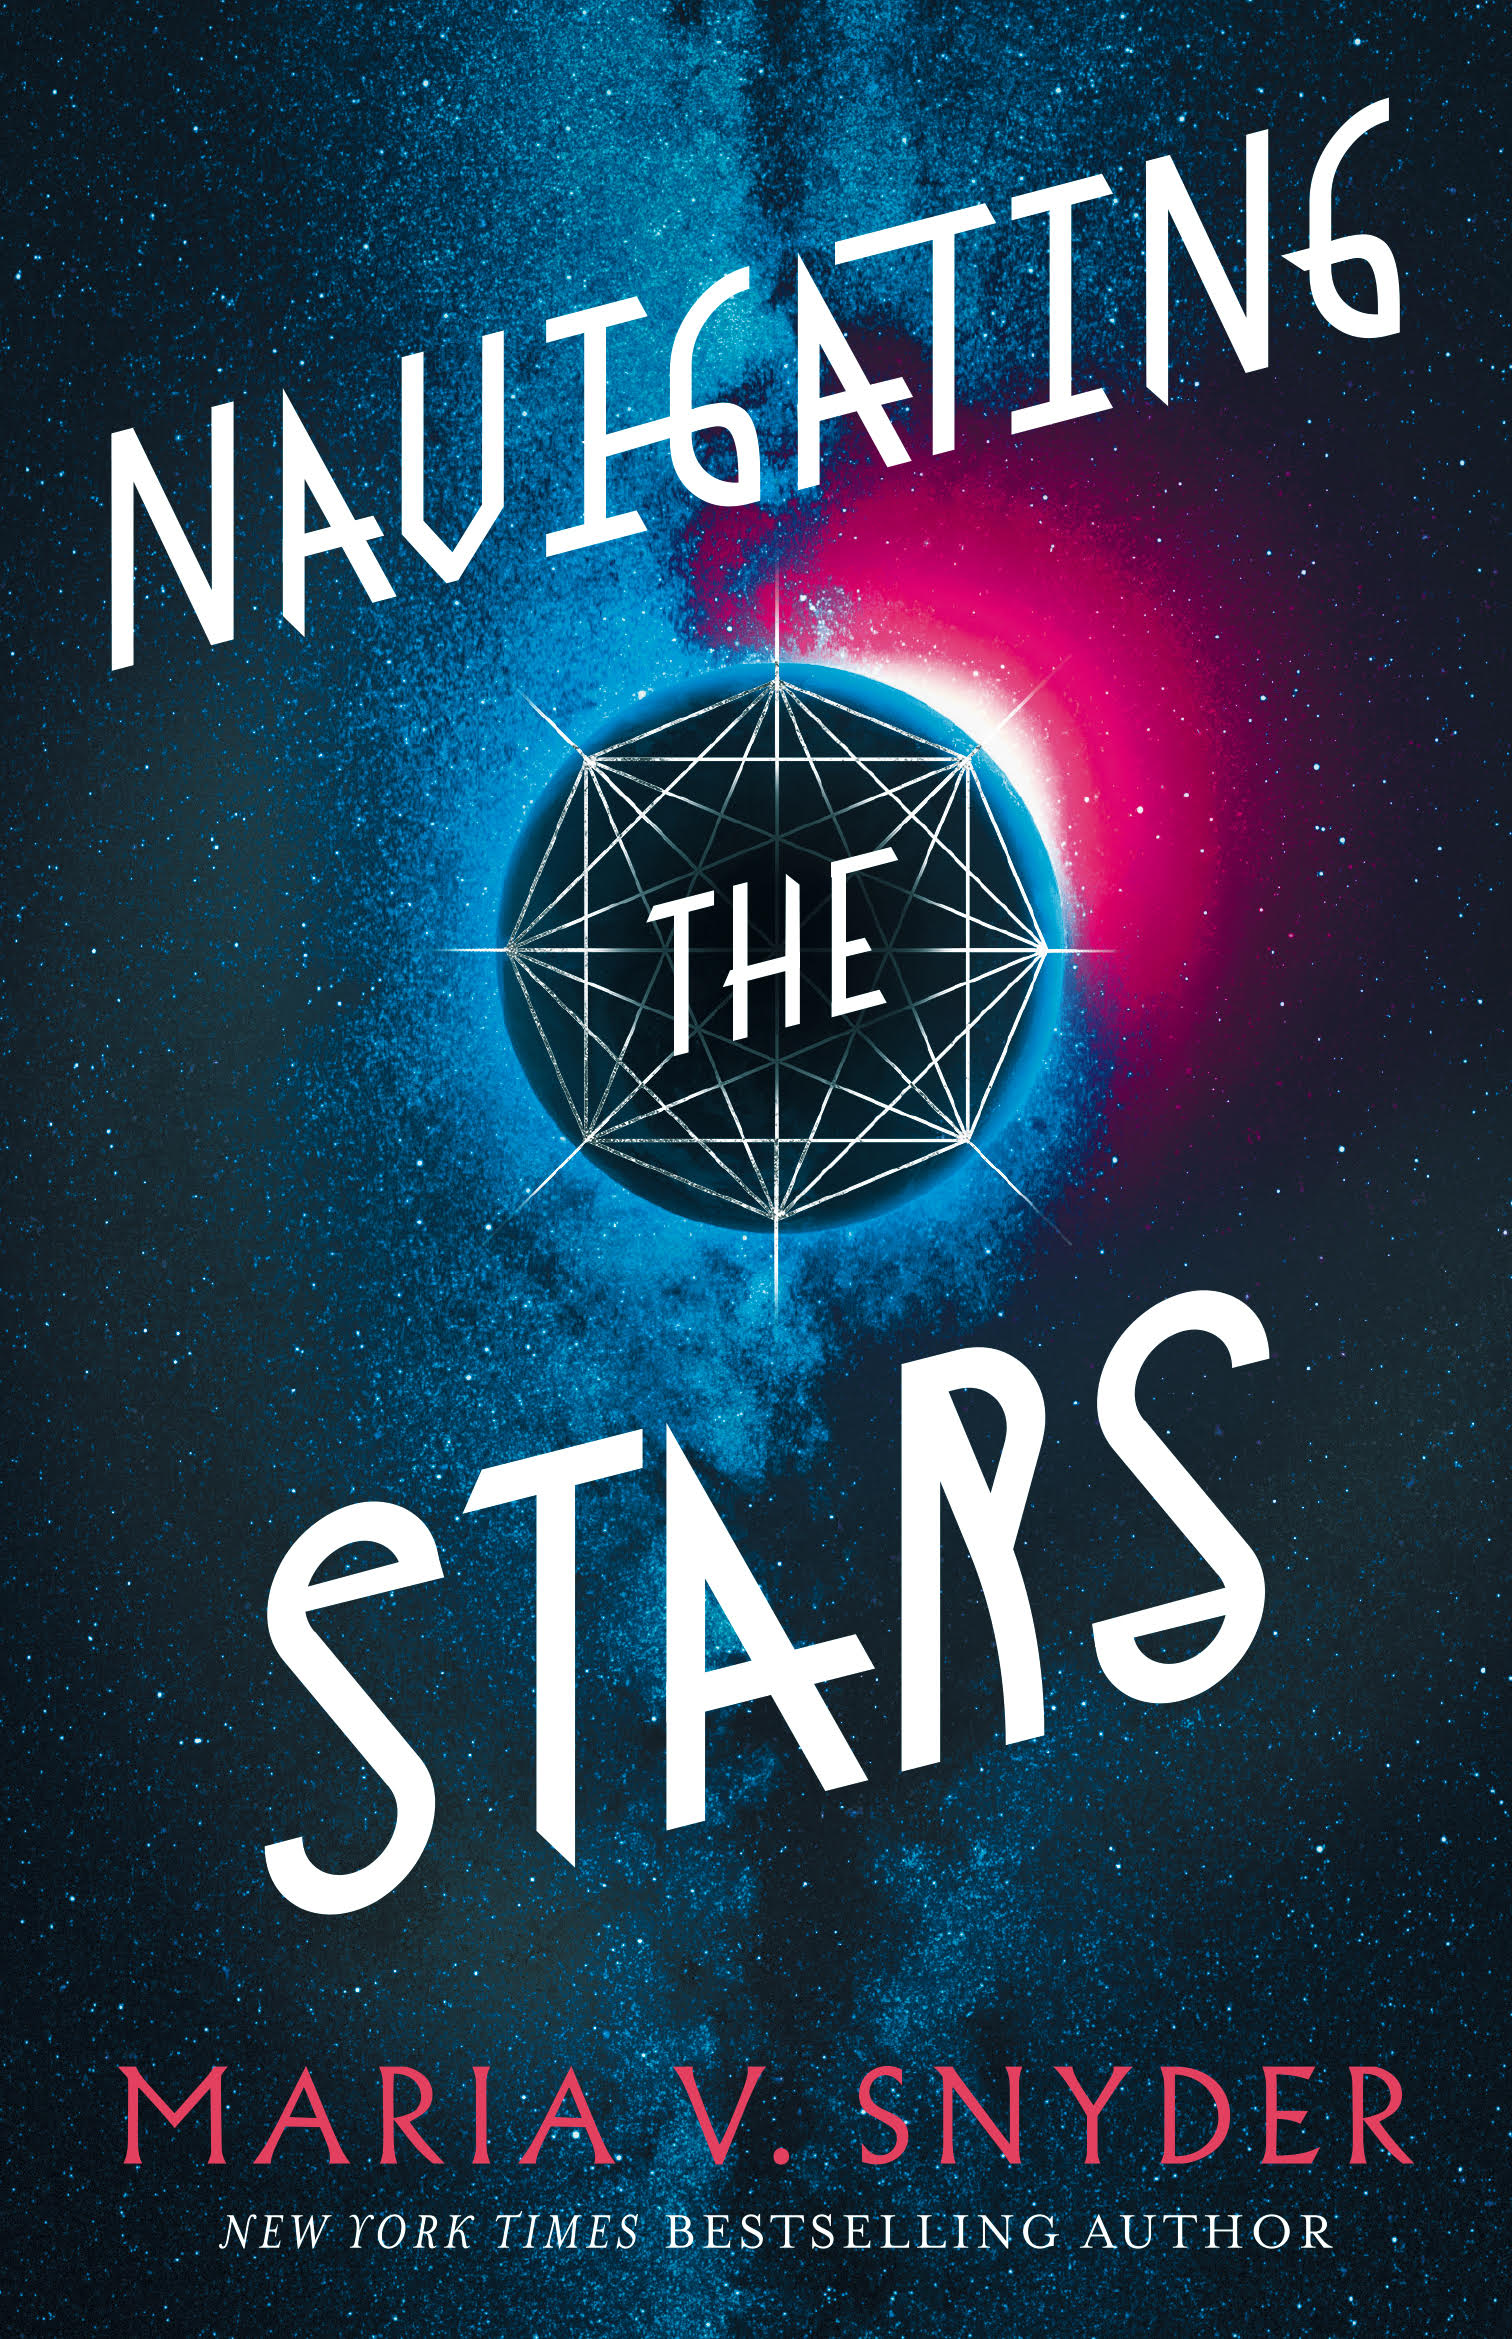 Blog Tour & Giveaway: Navigating the Stars by Maria V. Snyder